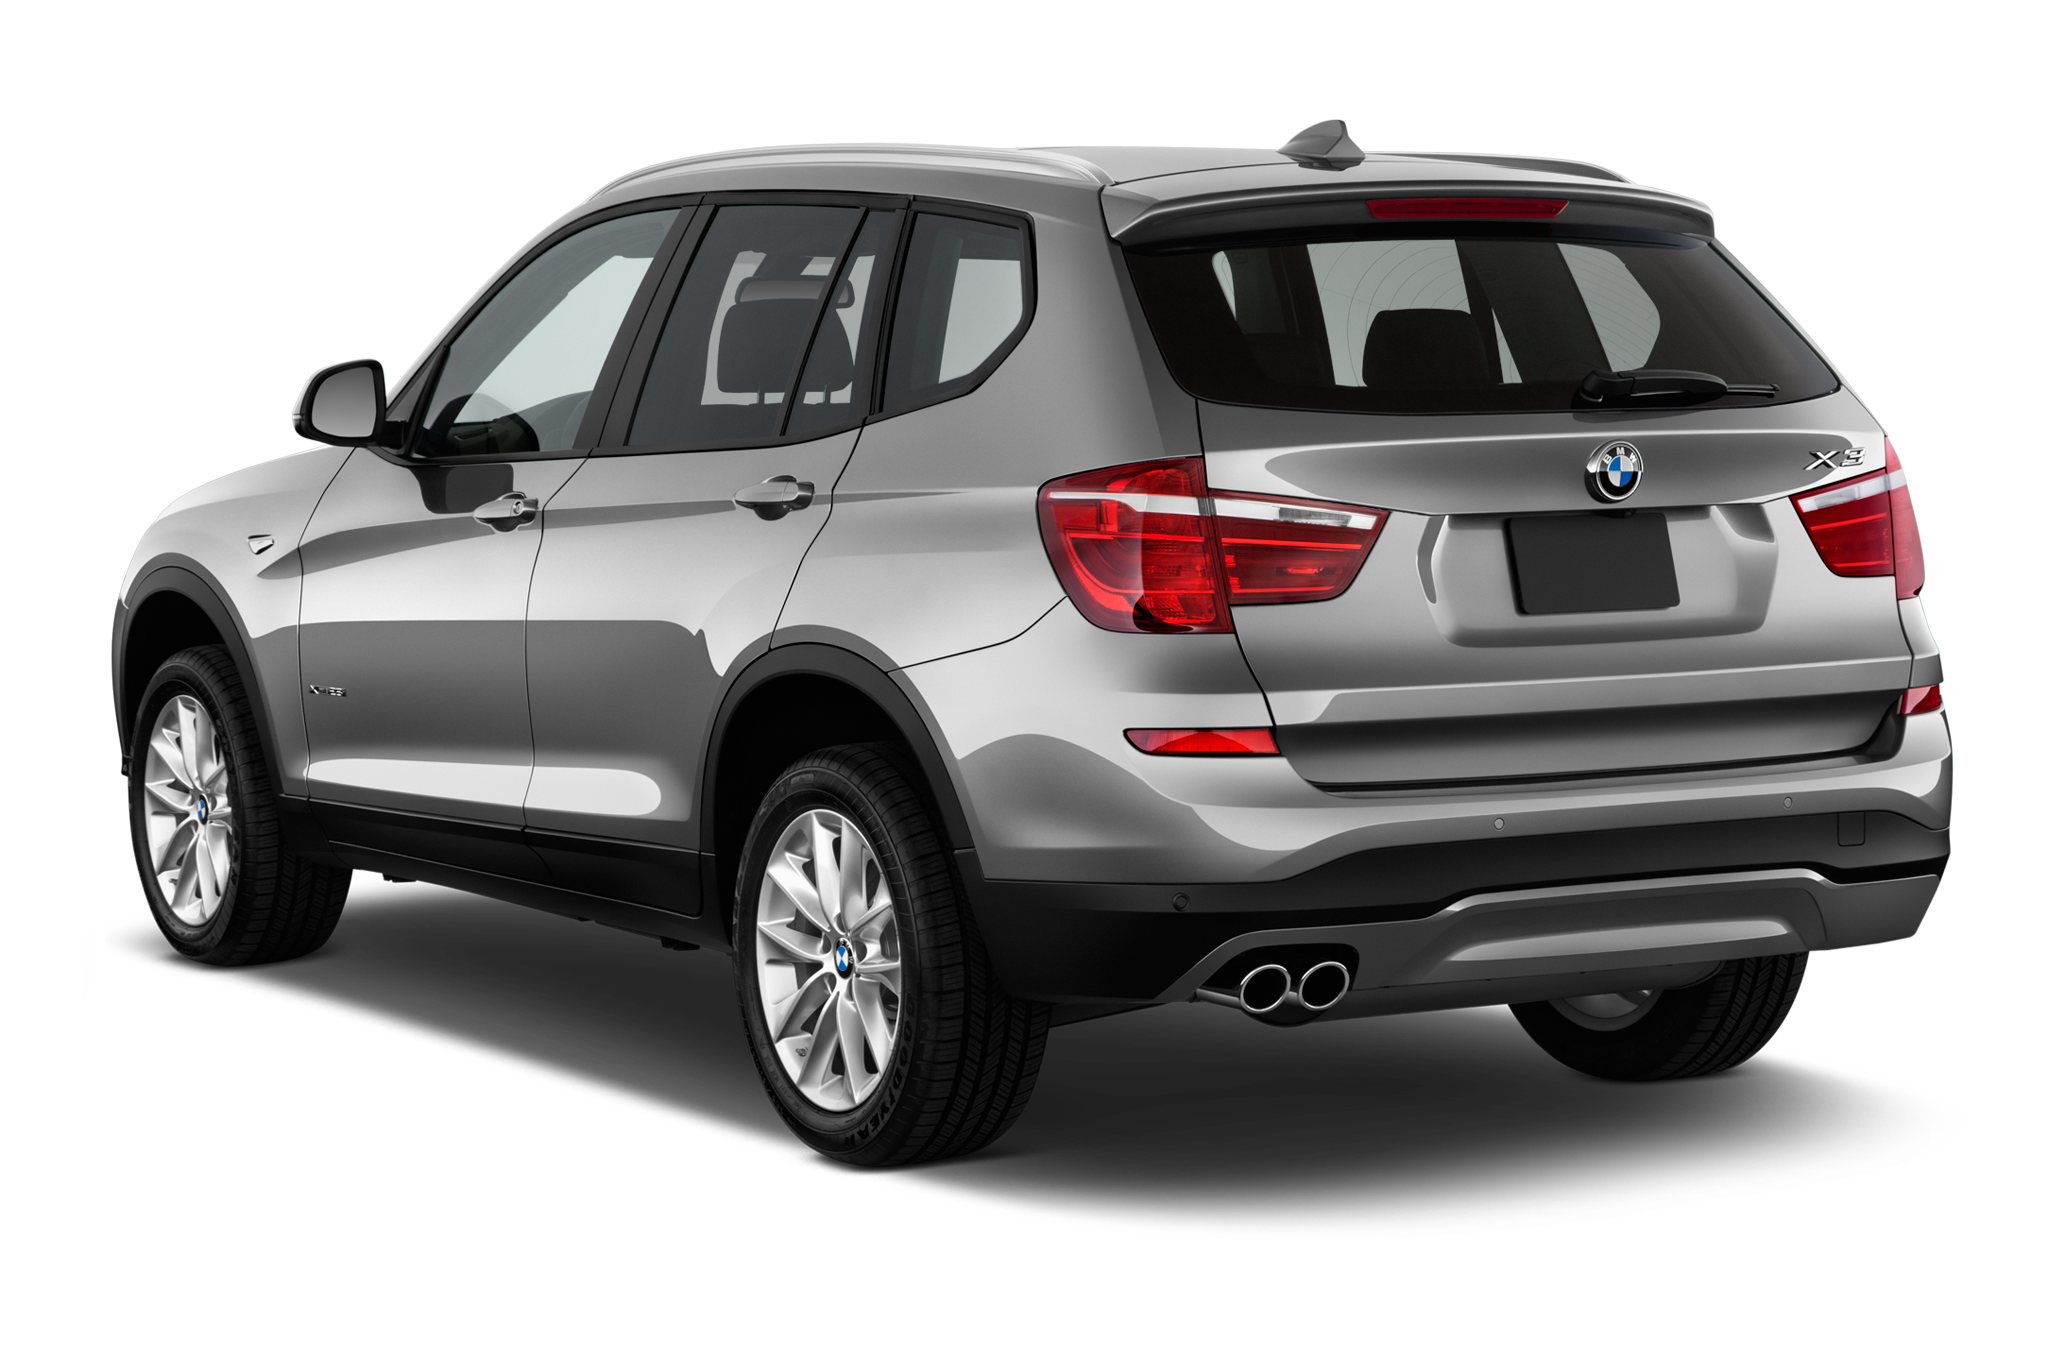 Bmw X3 Xdrive28i 2014 International Price Overview